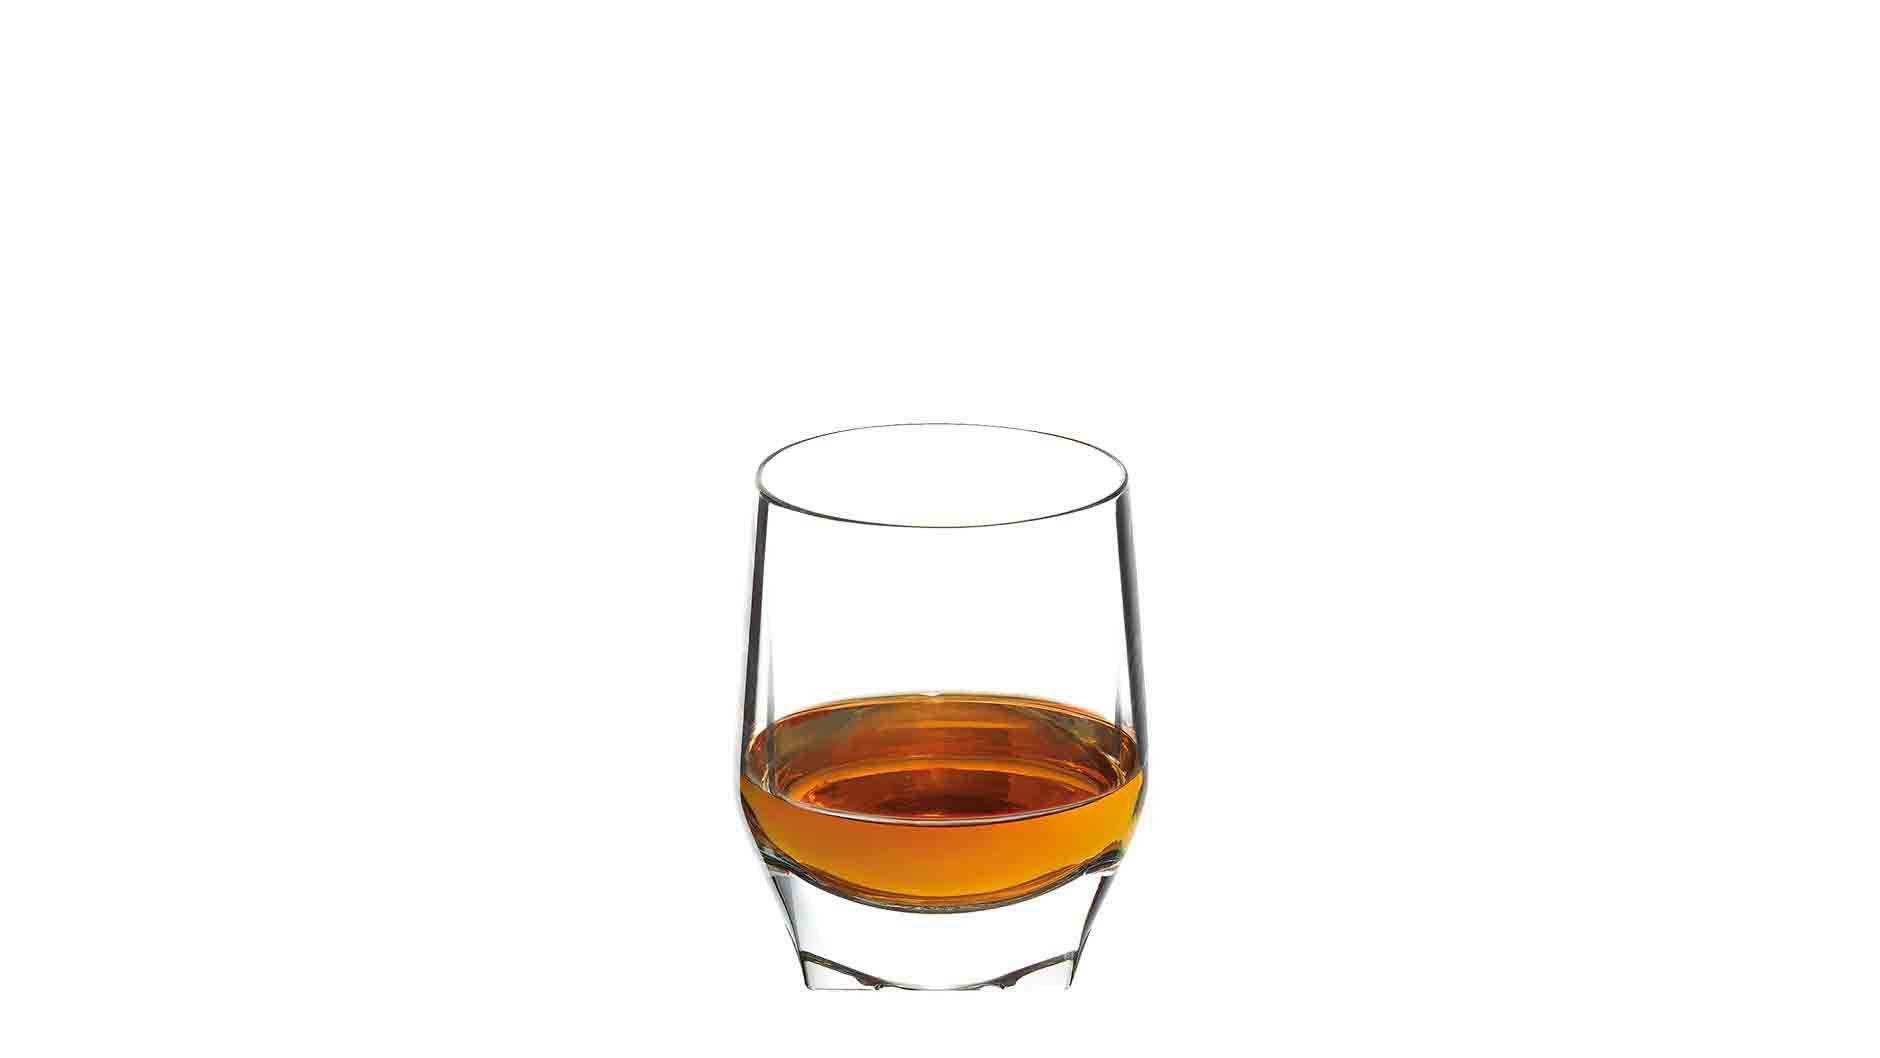 Forma ideal de servir John Walker & Sons Private Collection 2014 Edition en un vaso de whisky